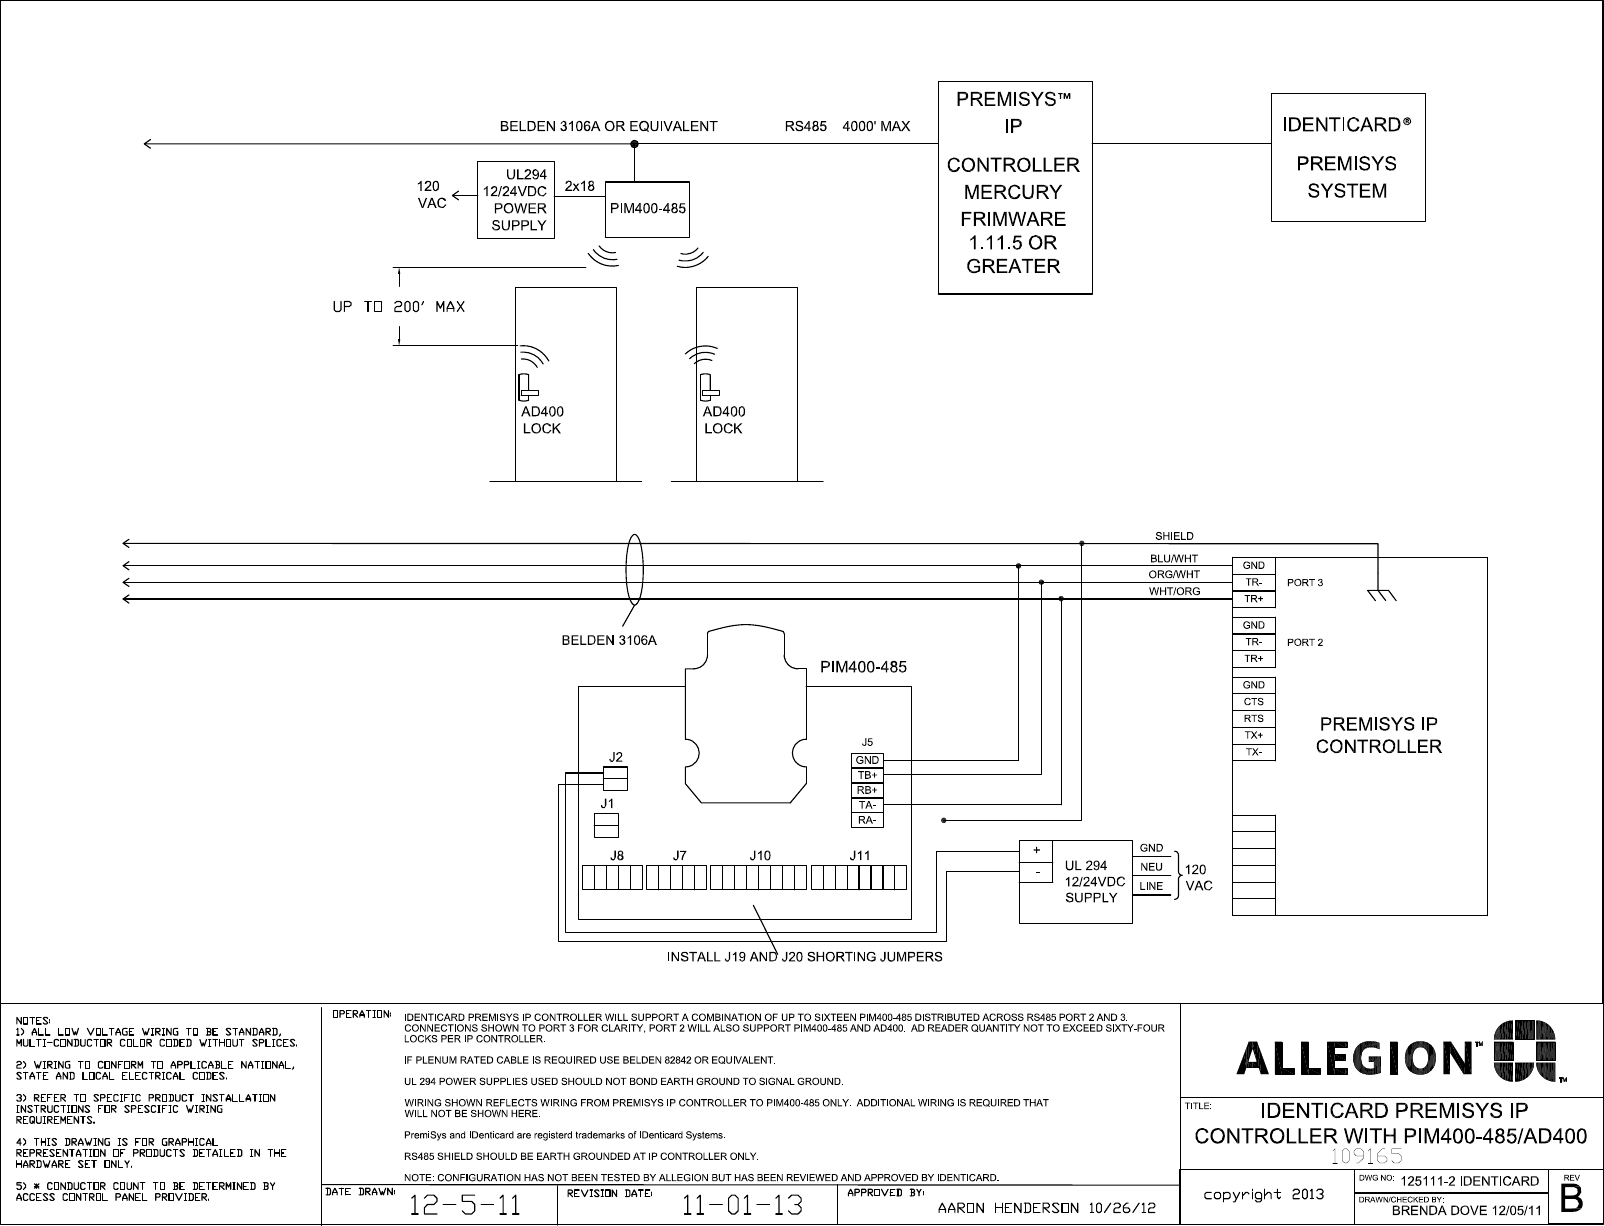 schlage electronics c ad400 wiring diagram identicard premi sys ip  controller rs485 109165